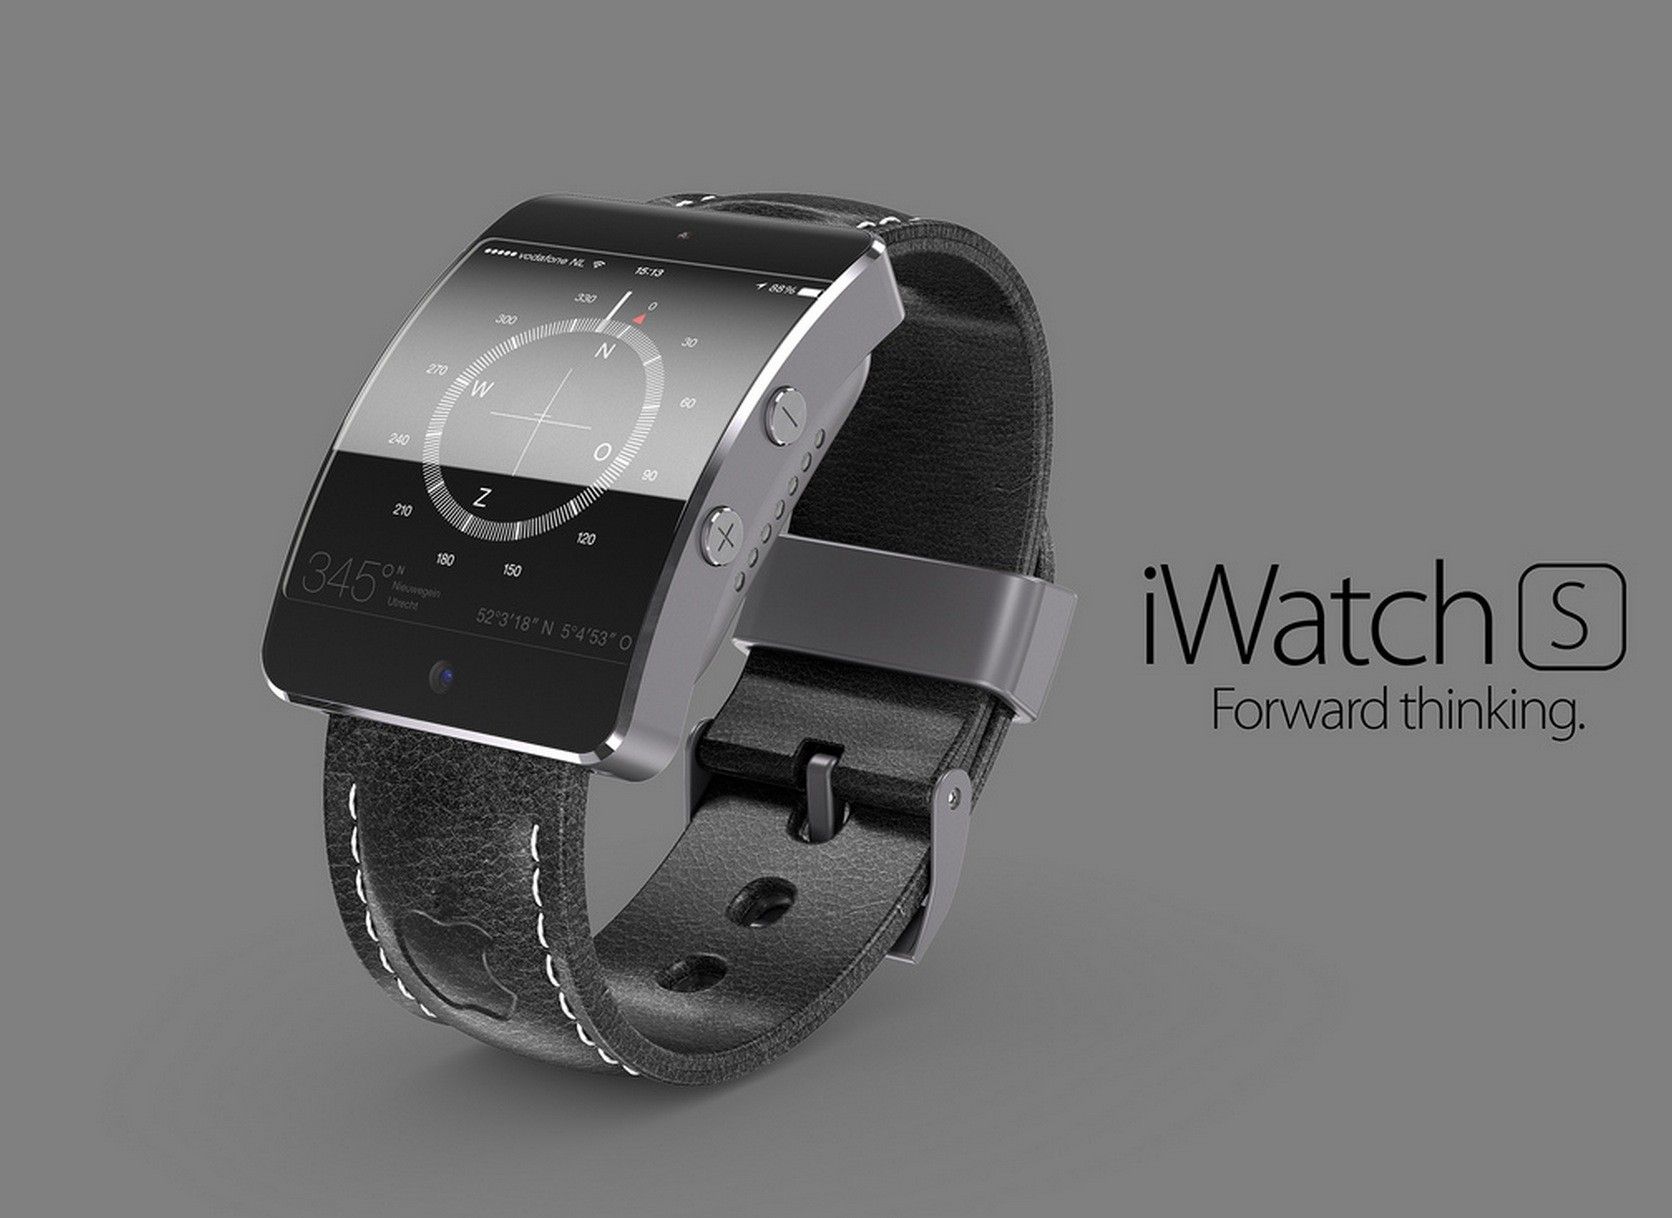 How Much Will the iWatch Cost?